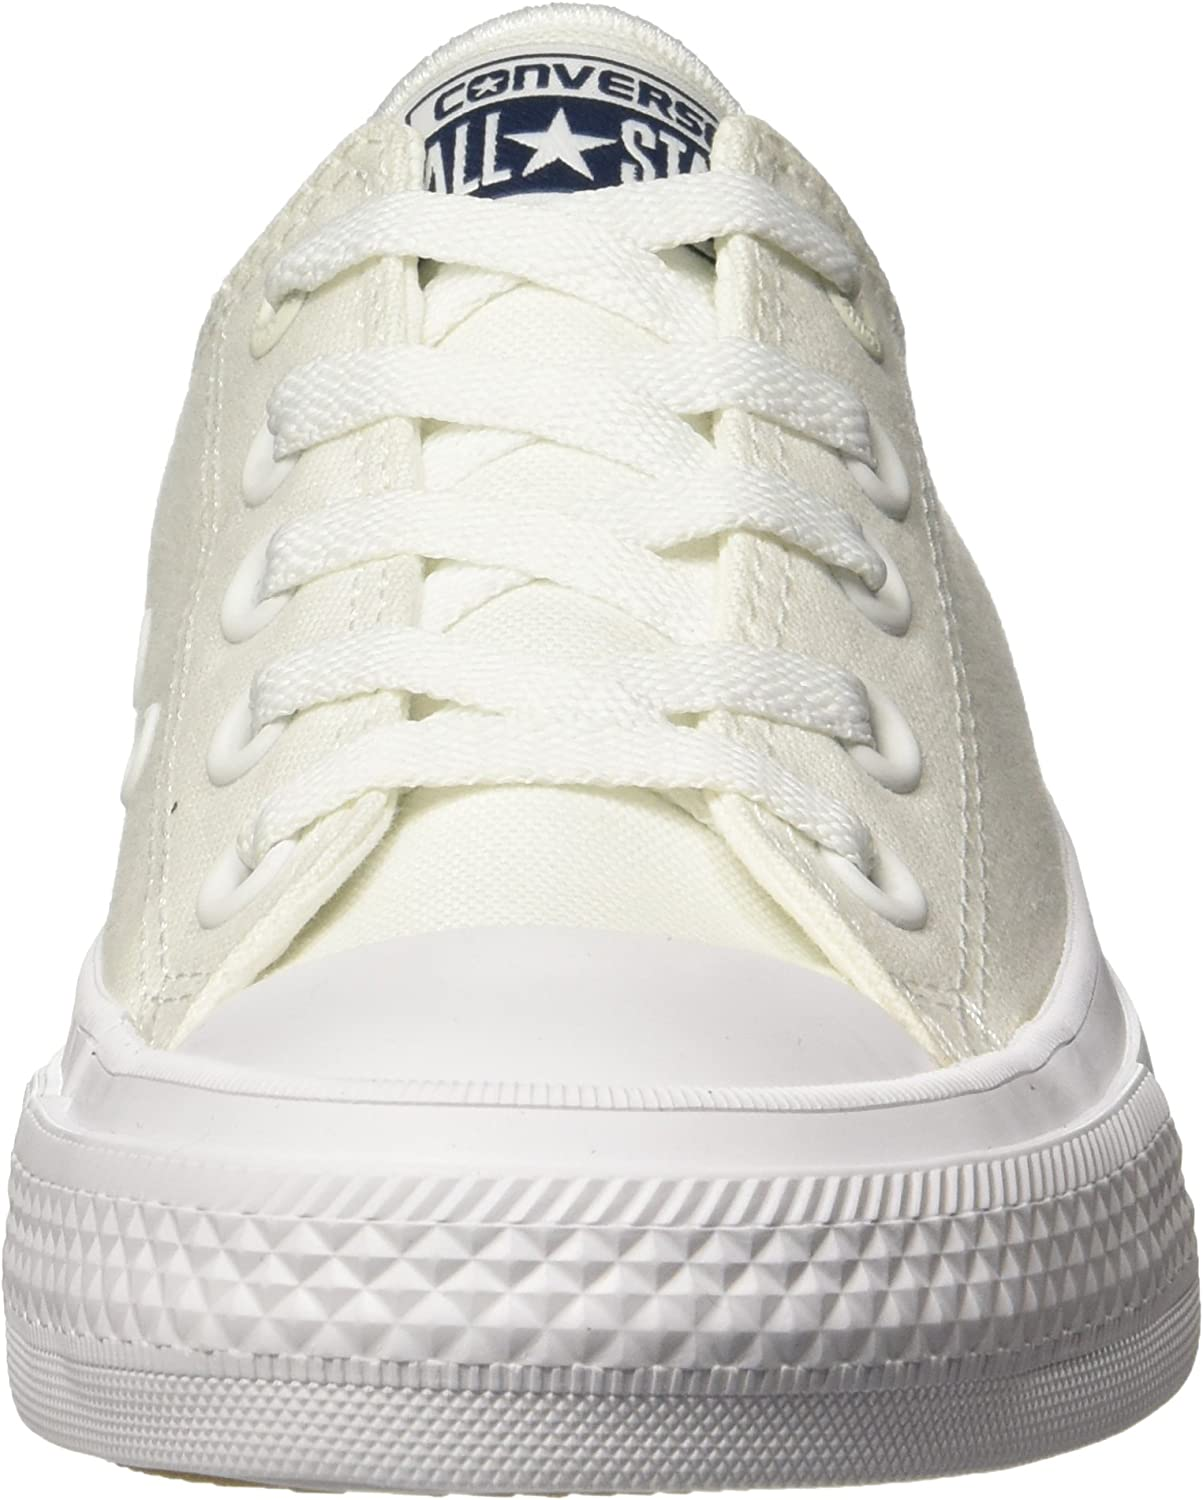 Converse CT II Ox, Baskets Basses Homme Blanc White White Navy